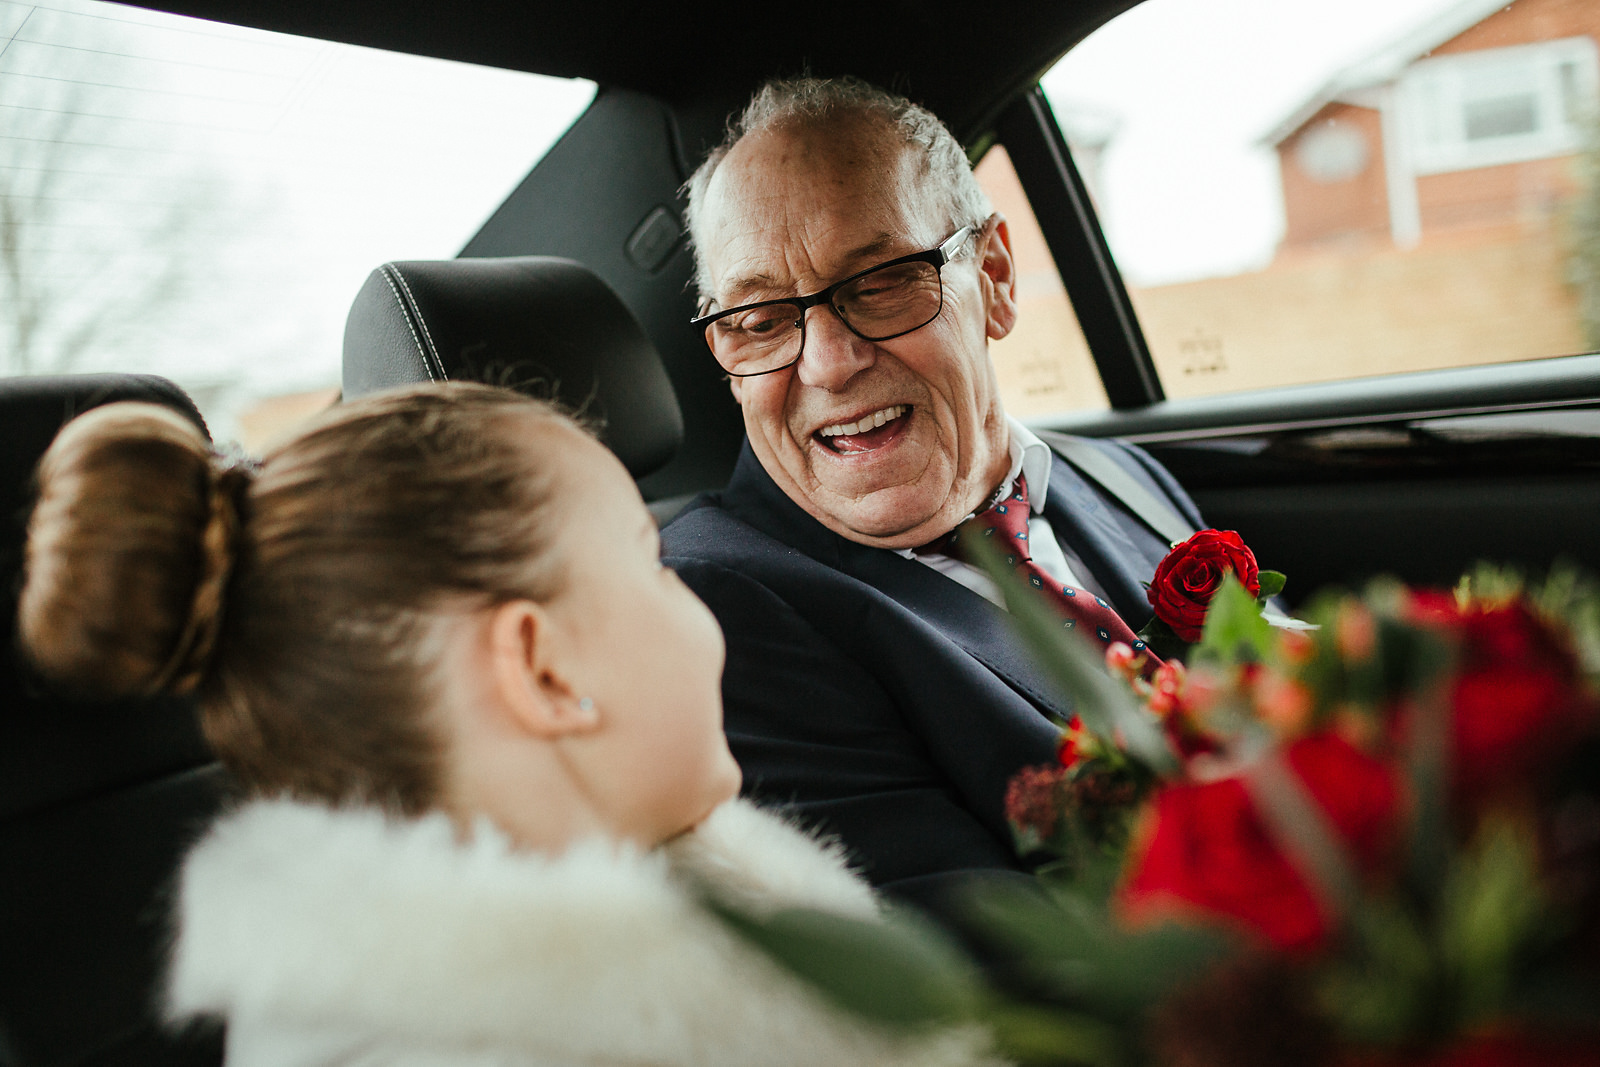 Granbad and granddaughter on the way to the wedding